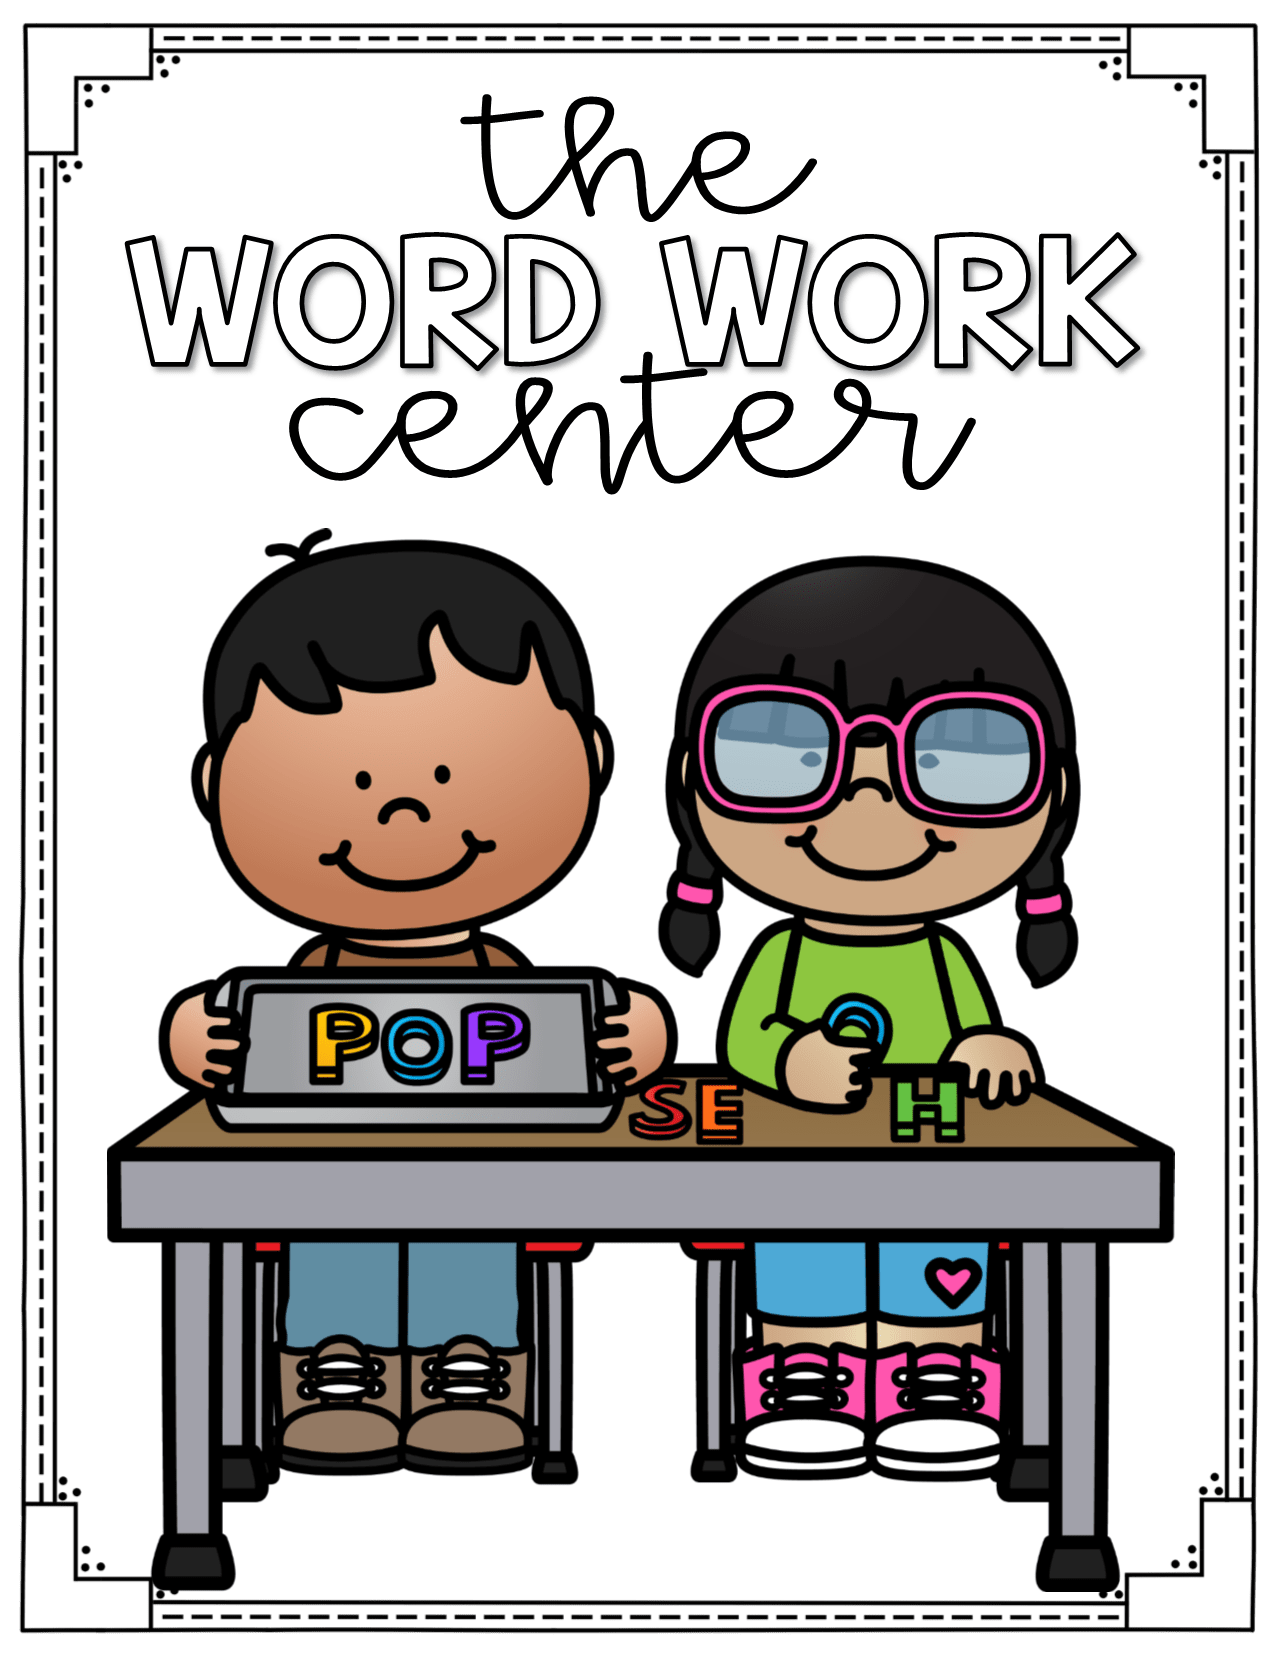 Free Word Work Printable For Blends Clip Art Gclipart